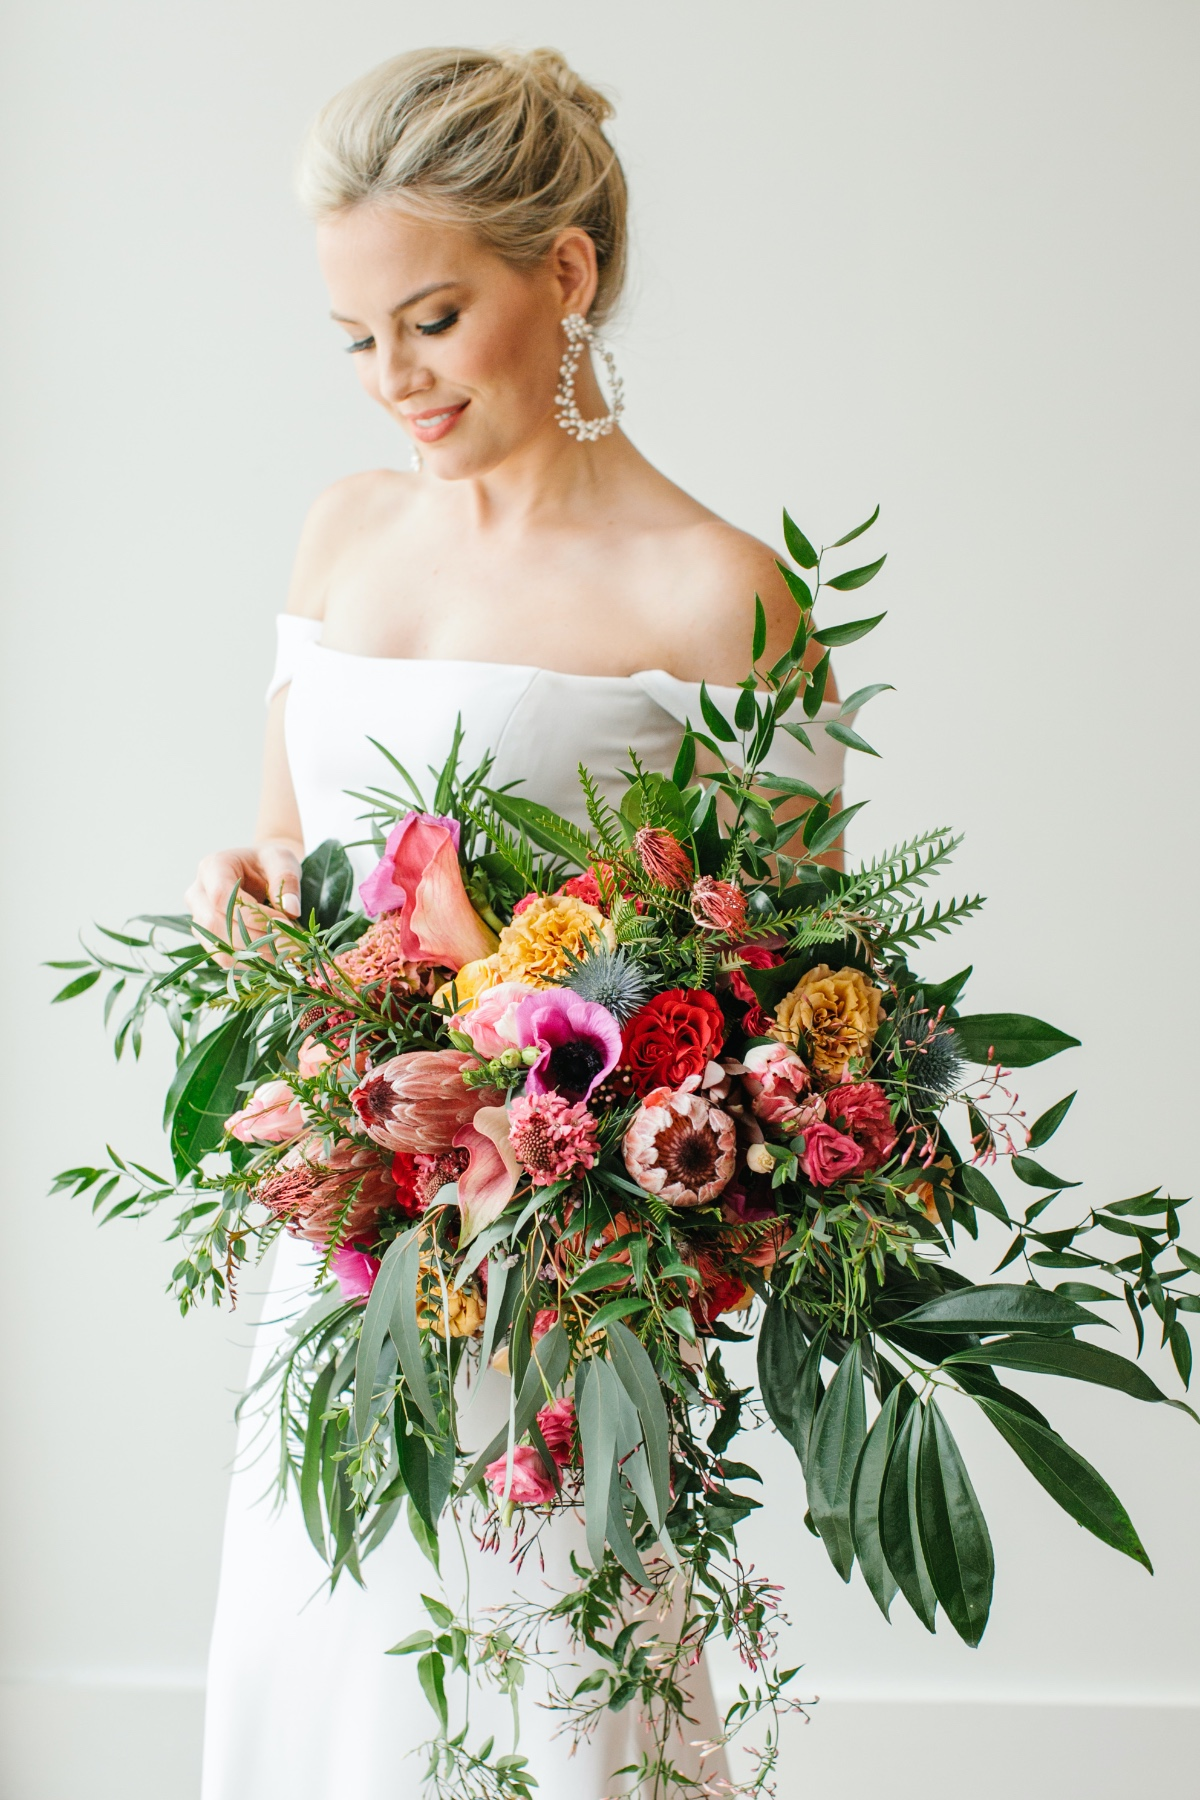 lose wedding bouquet with protea, pink anemone, greenery and tropical florals